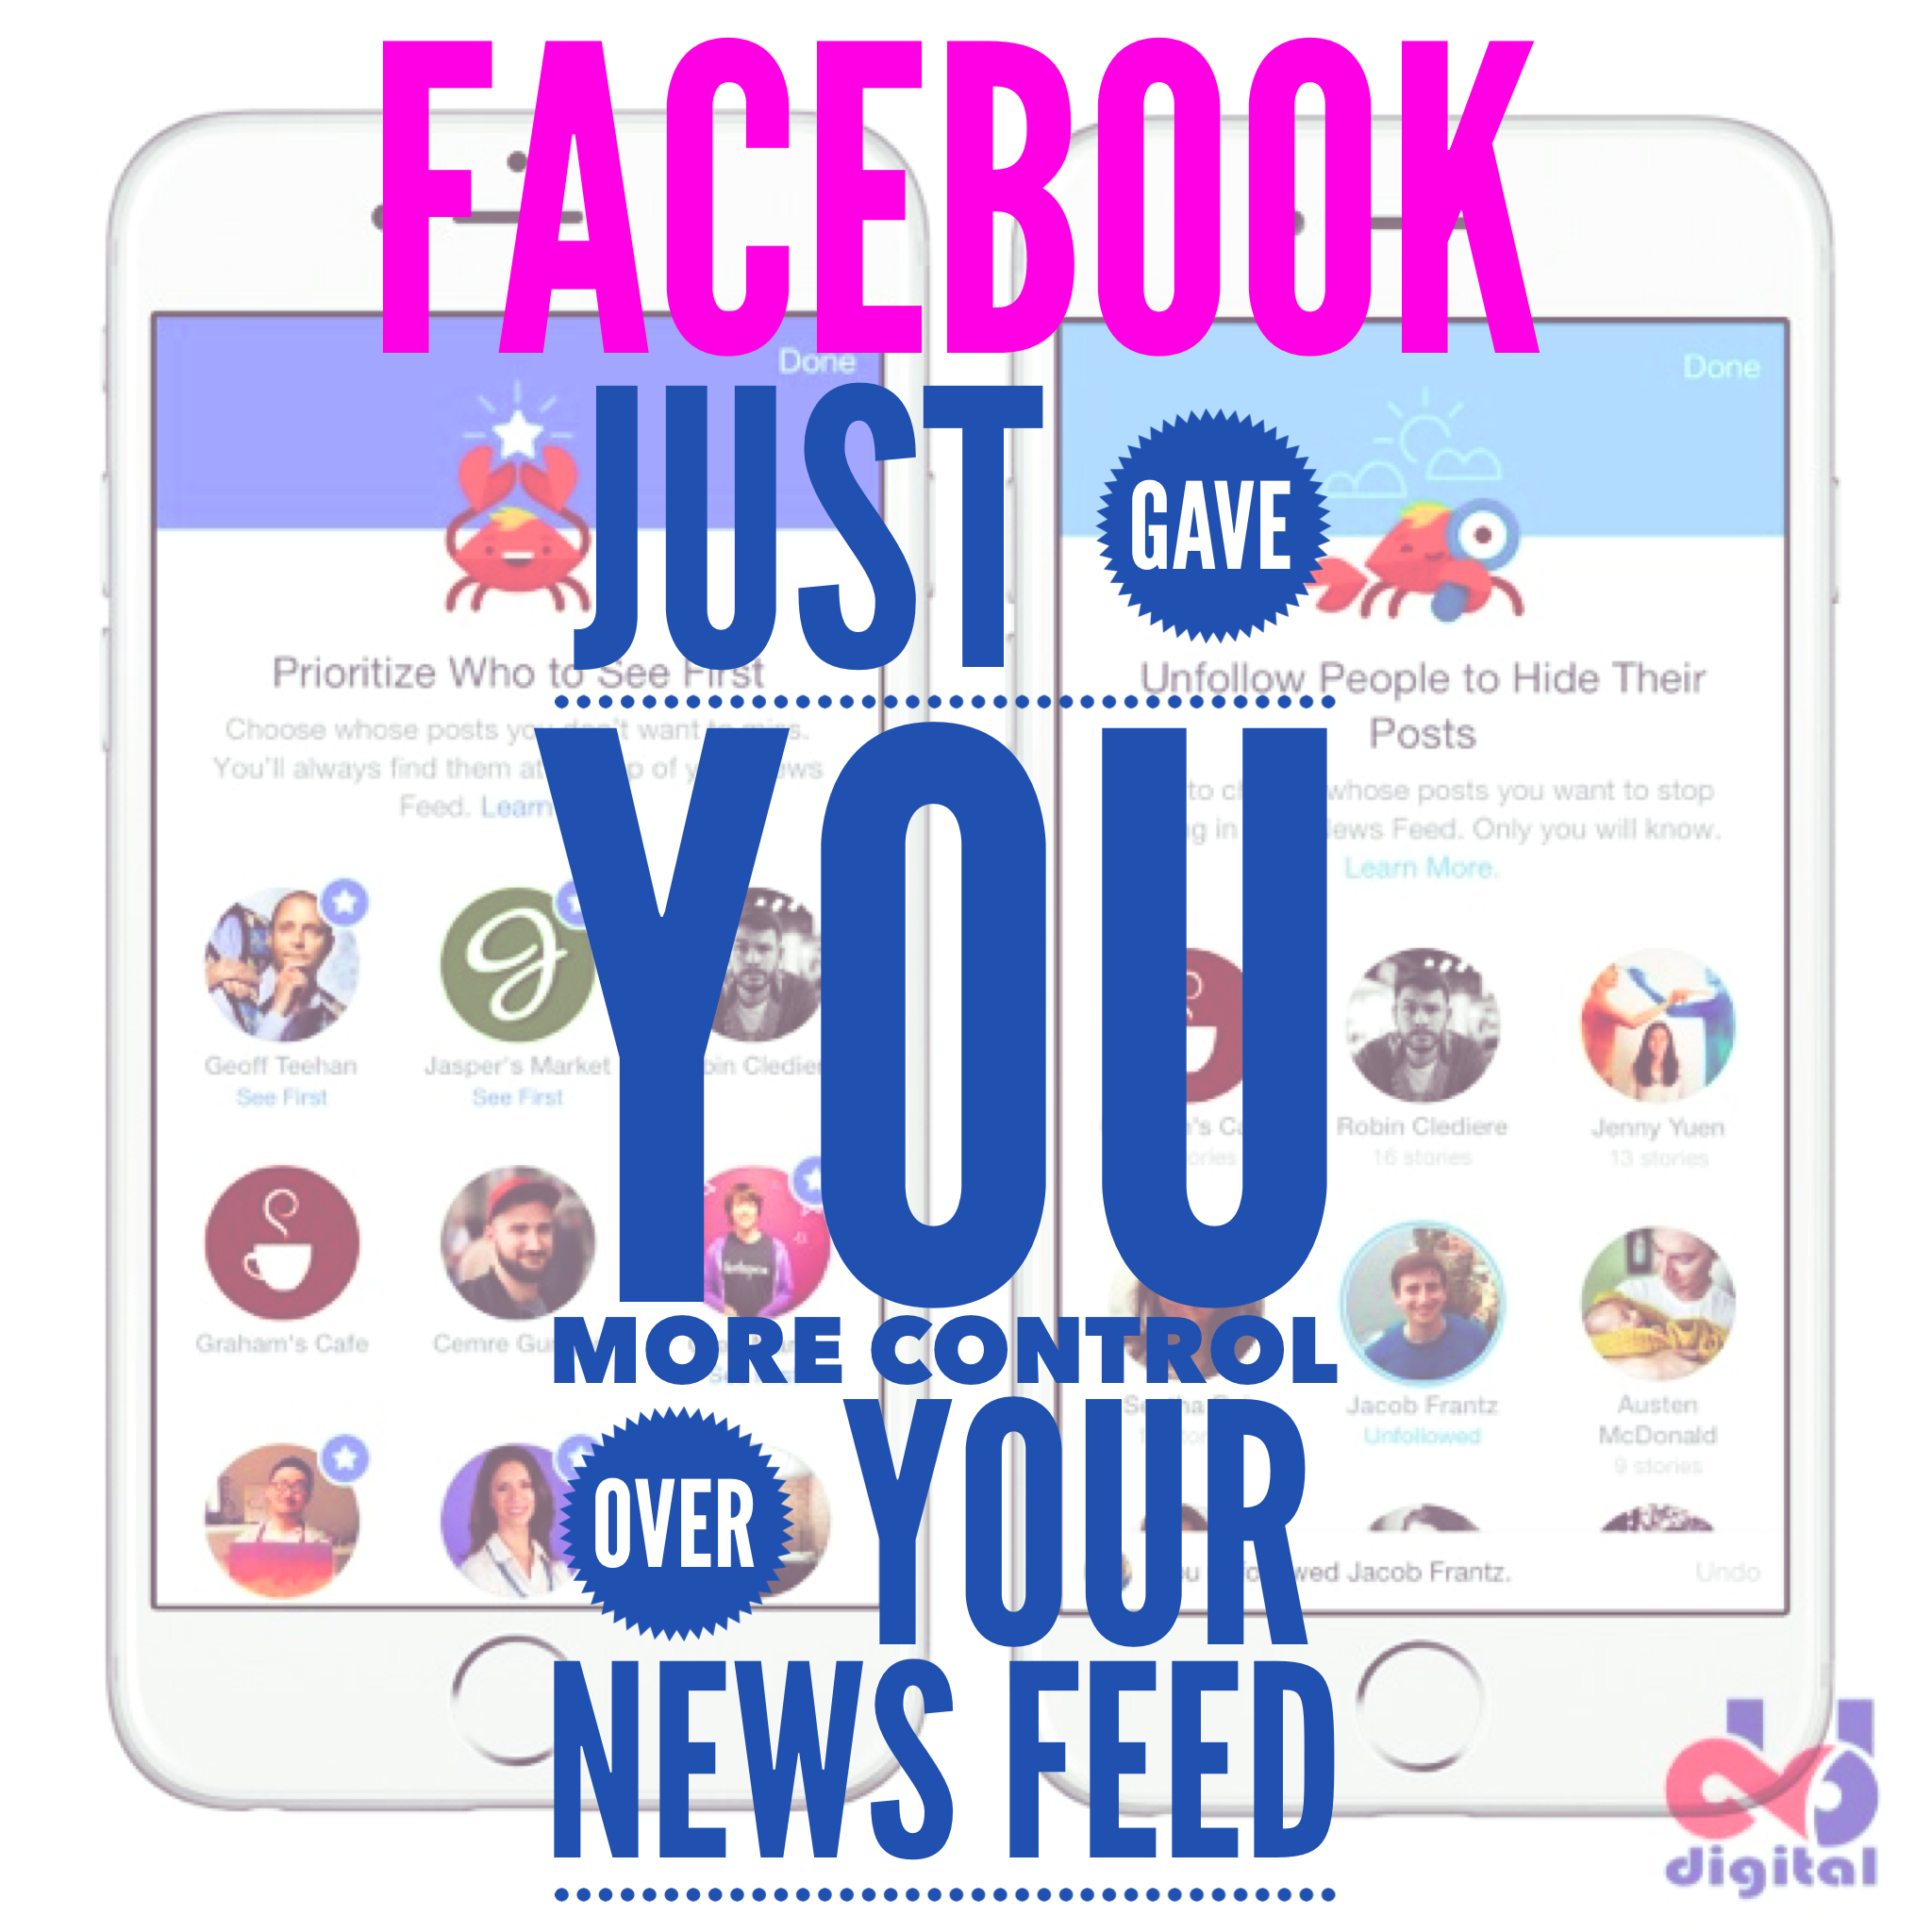 New Facebook Algorithm: User Is In Control of News Feed